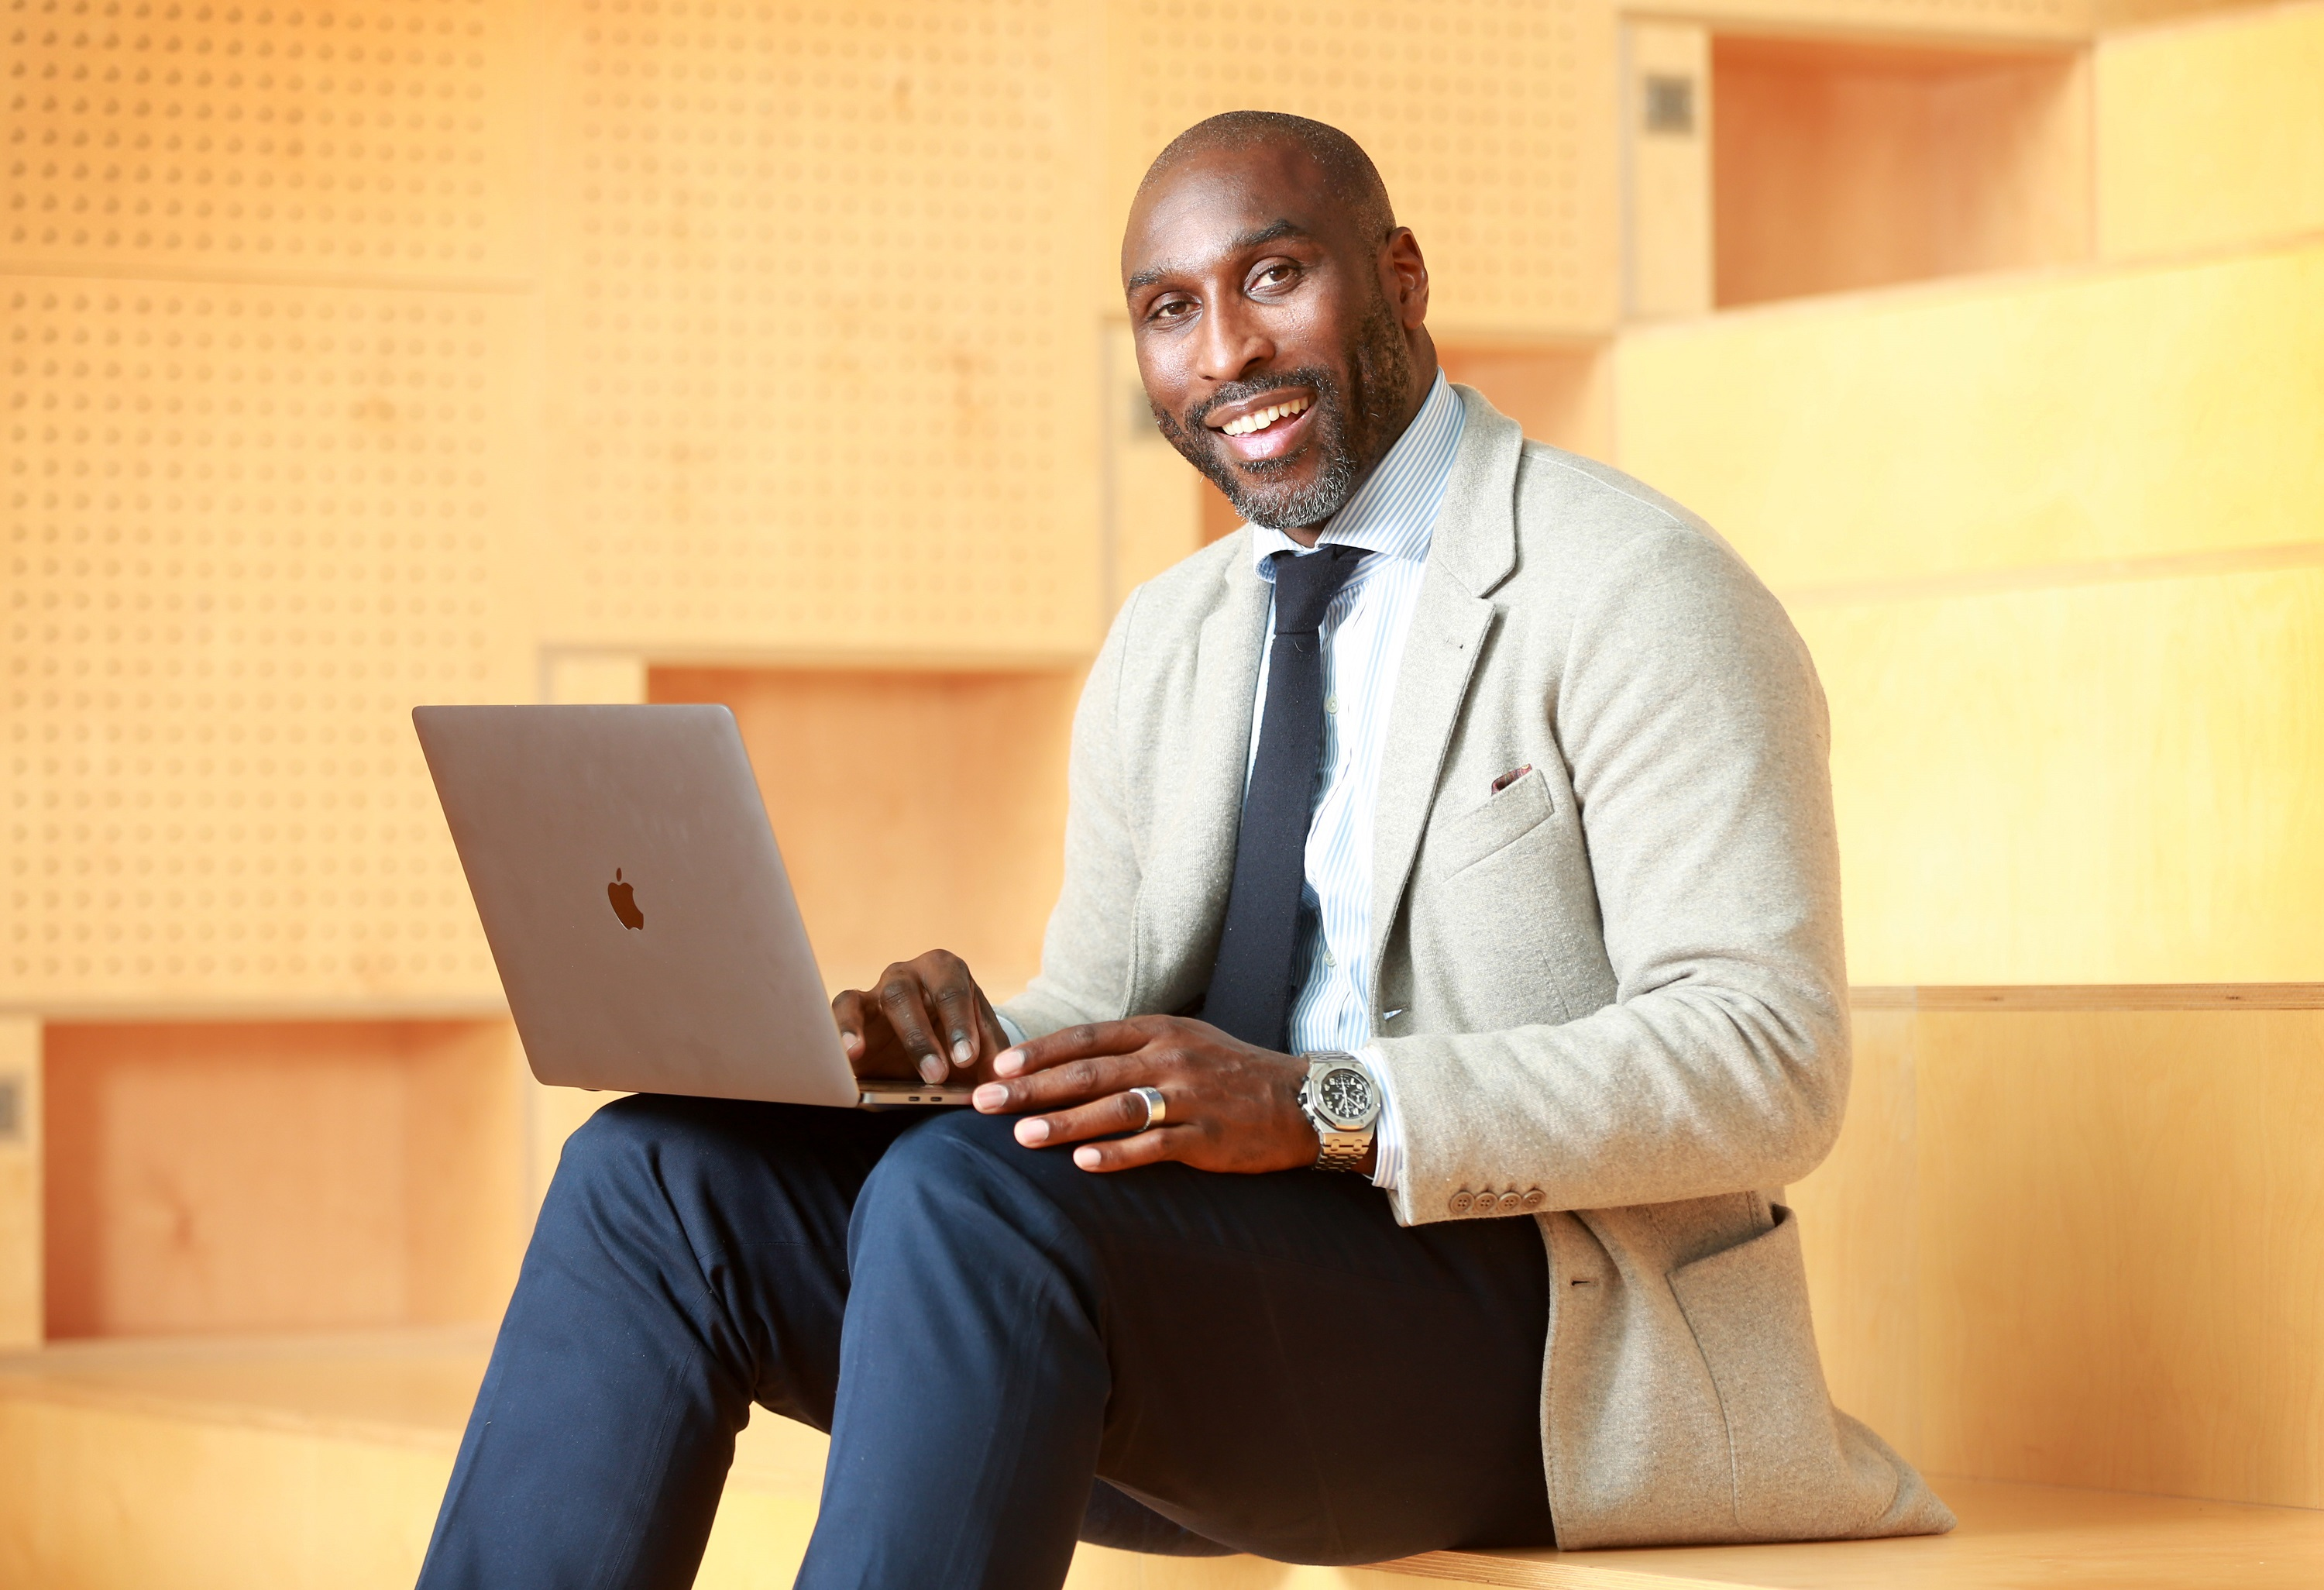 Sol Campbell finds business ownership a natural fit after football career